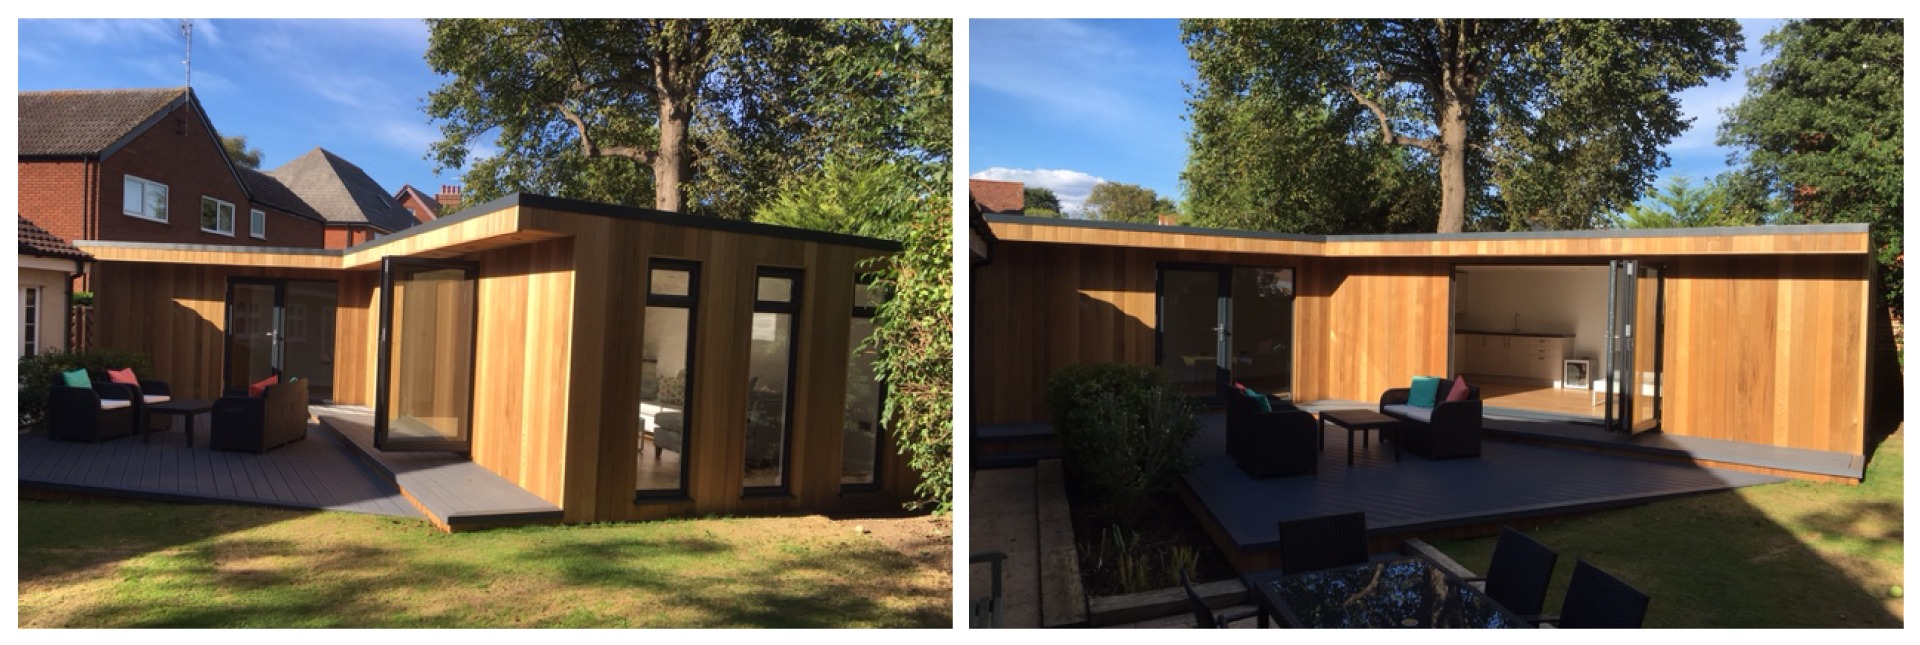 Large garden room multiple angles